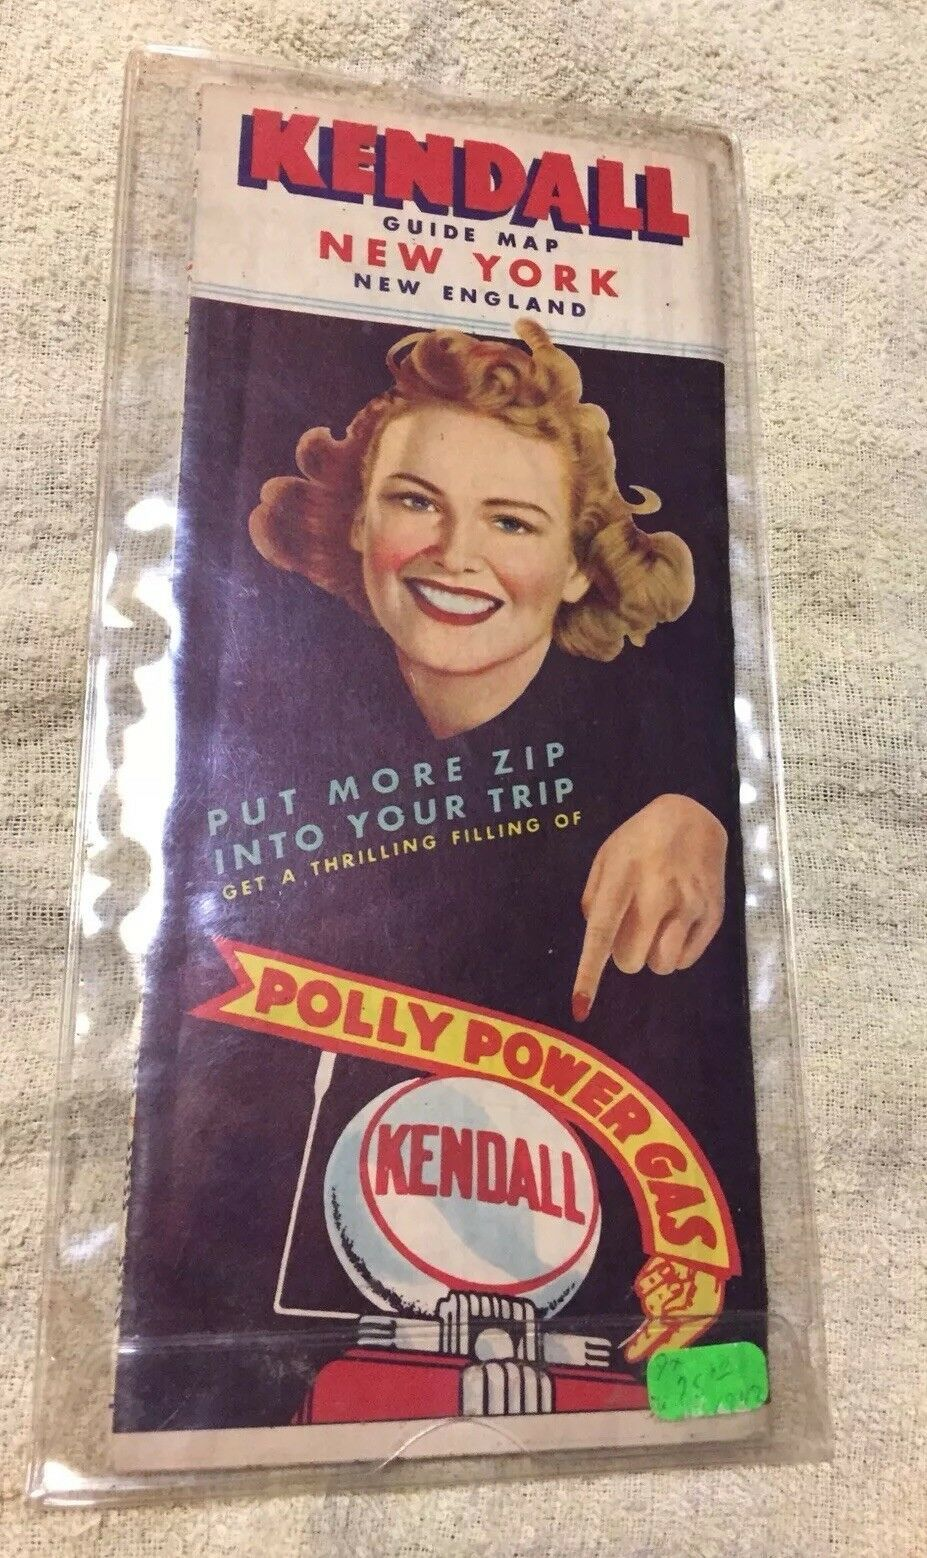 Primary image for 1942 Kendall Oil Road Map: New York New England in plastic sleeve preowned VGC